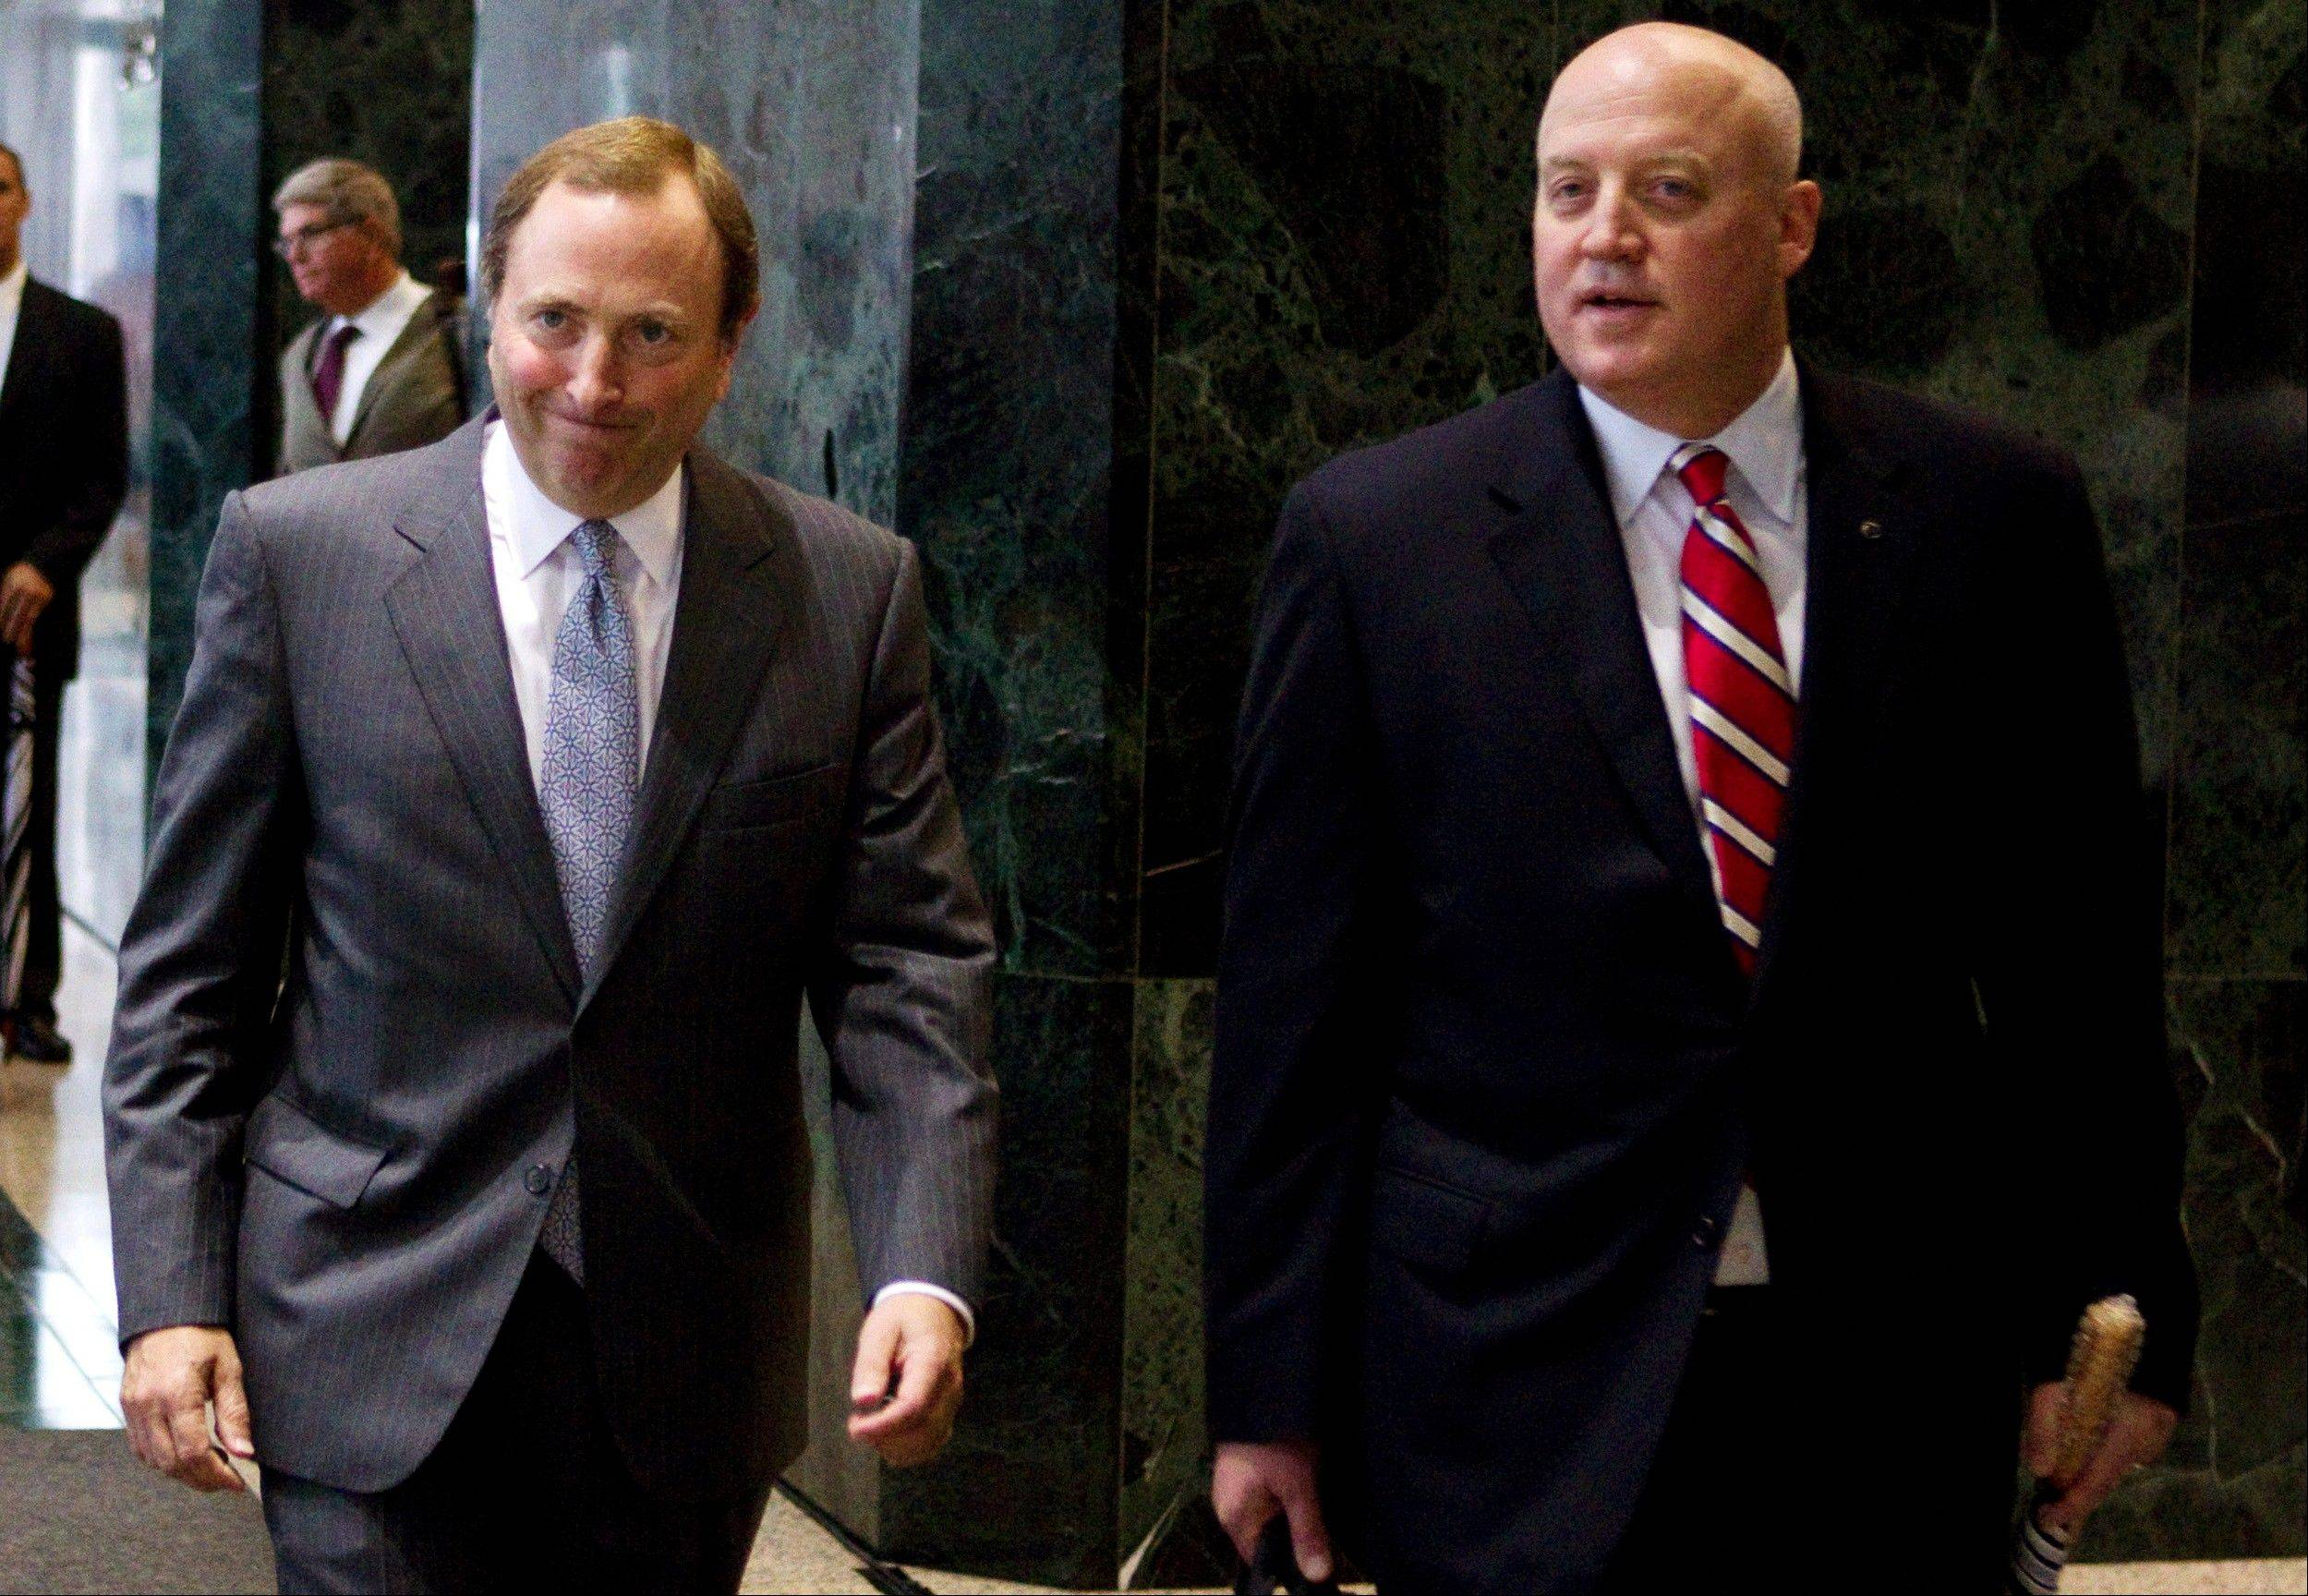 "FILE - This Aug. 14, 2012, file photo shows NHL commissioner Gary Bettman, left, and Bill Daly, deputy commissioner and chief legal officer, following collective bargaining talks in Toronto. The NHL is set to get back to the bargaining table Sunday, Dec. 30, 2012, with the locked-out players� association after a new contract offer from the league broke the ice between the fighting sides. ""We delivered to the union a new, comprehensive proposal for a successor CBA,"" NHL deputy commissioner Bill Daly said in a statement Friday, Dec. 28. ""We are not prepared to discuss the details of our proposal at this time."" (AP Photo/The Canadian Press, Chris Young, File)"